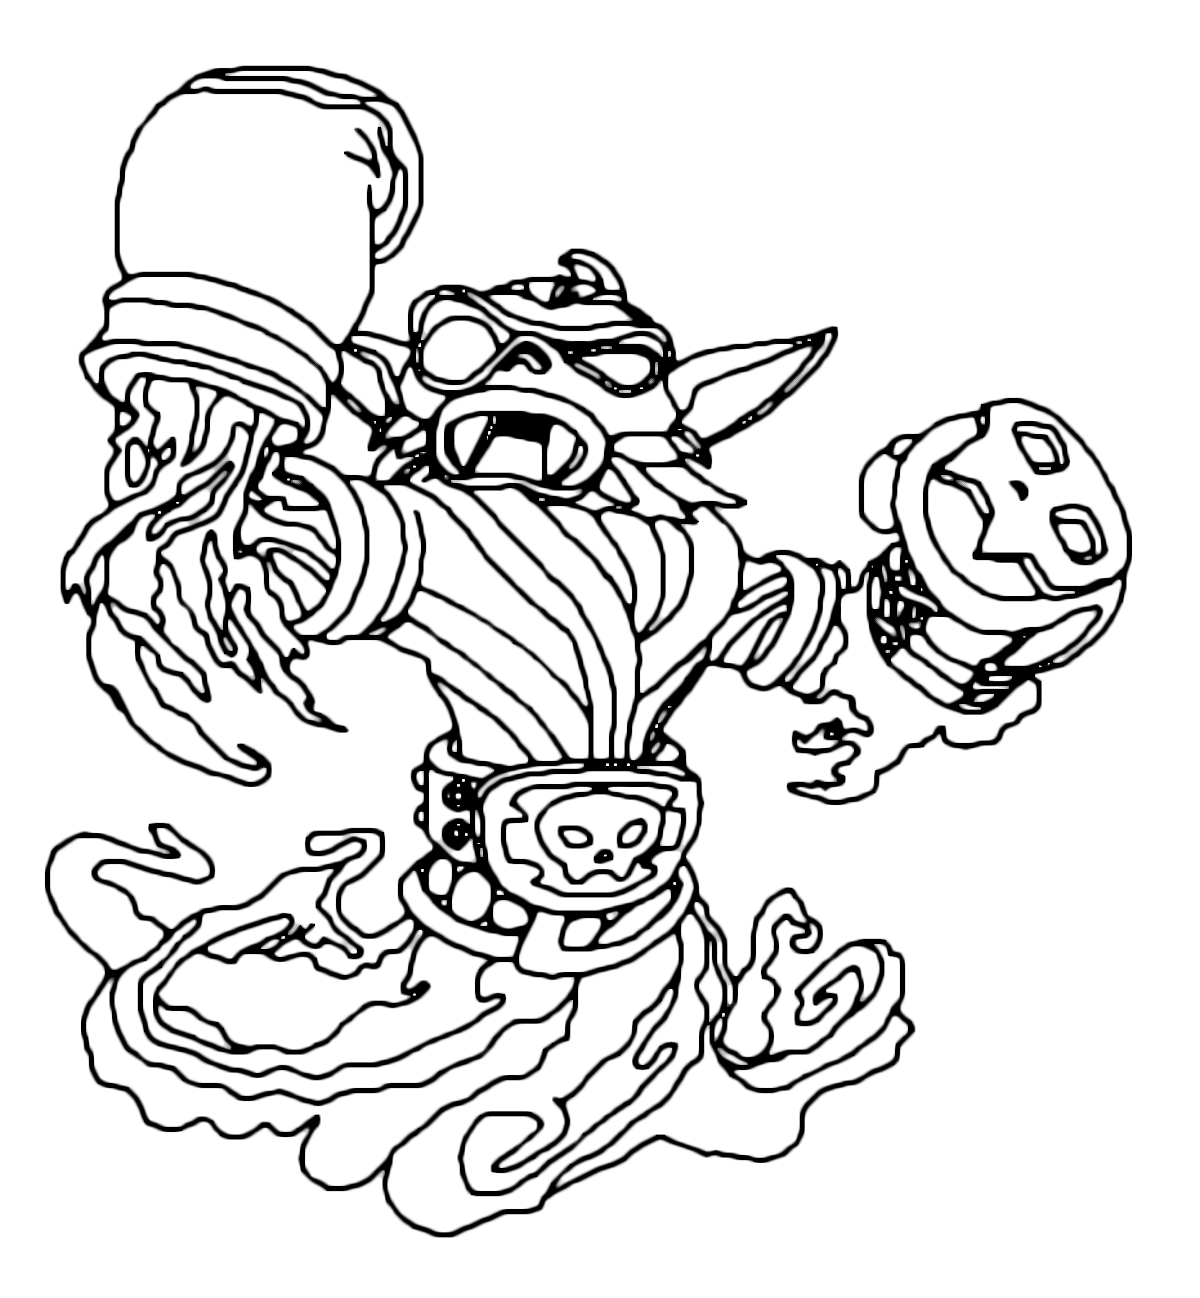 skylander wrecking ball coloring pages | Skylanders Coloring Pages Dragons Sketch Coloring Page